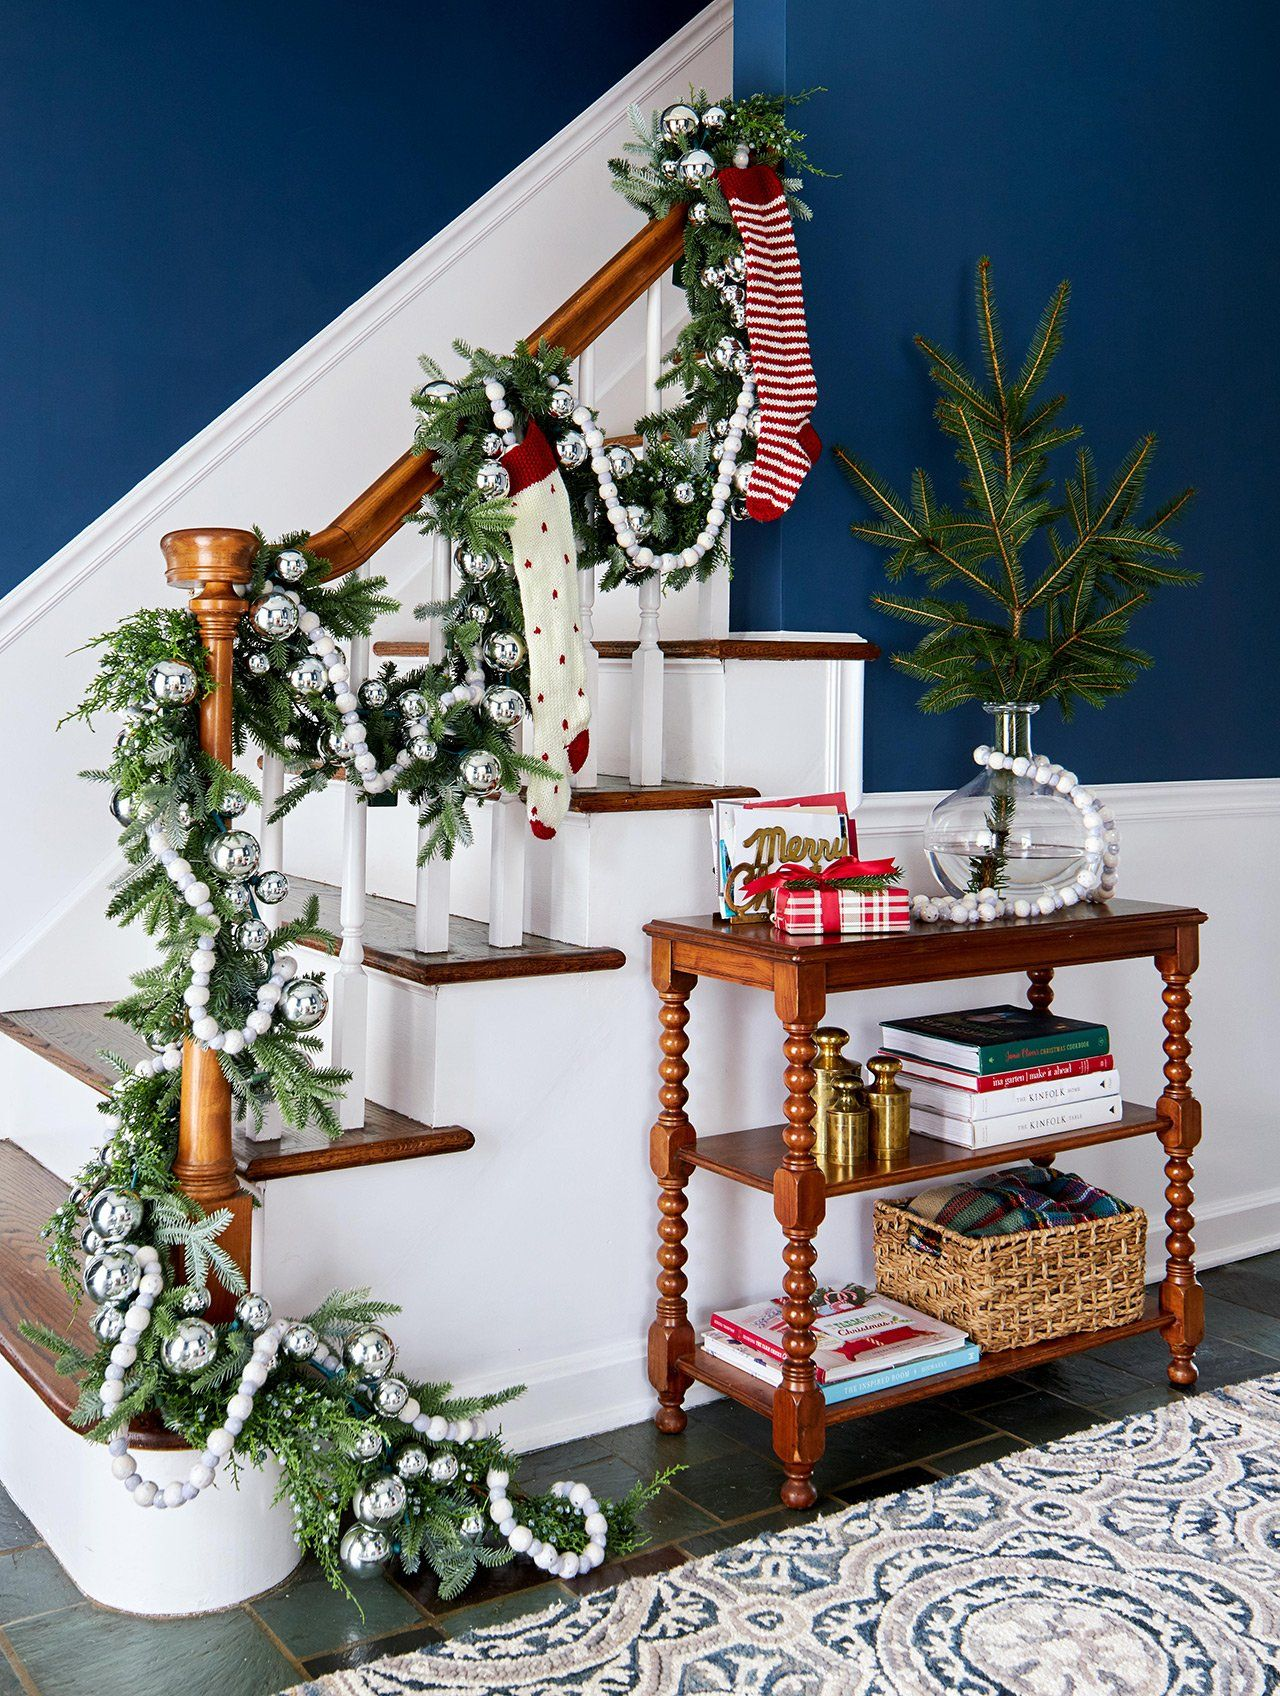 43 Festive DIY Christmas Garland Ideas Christmas stairs